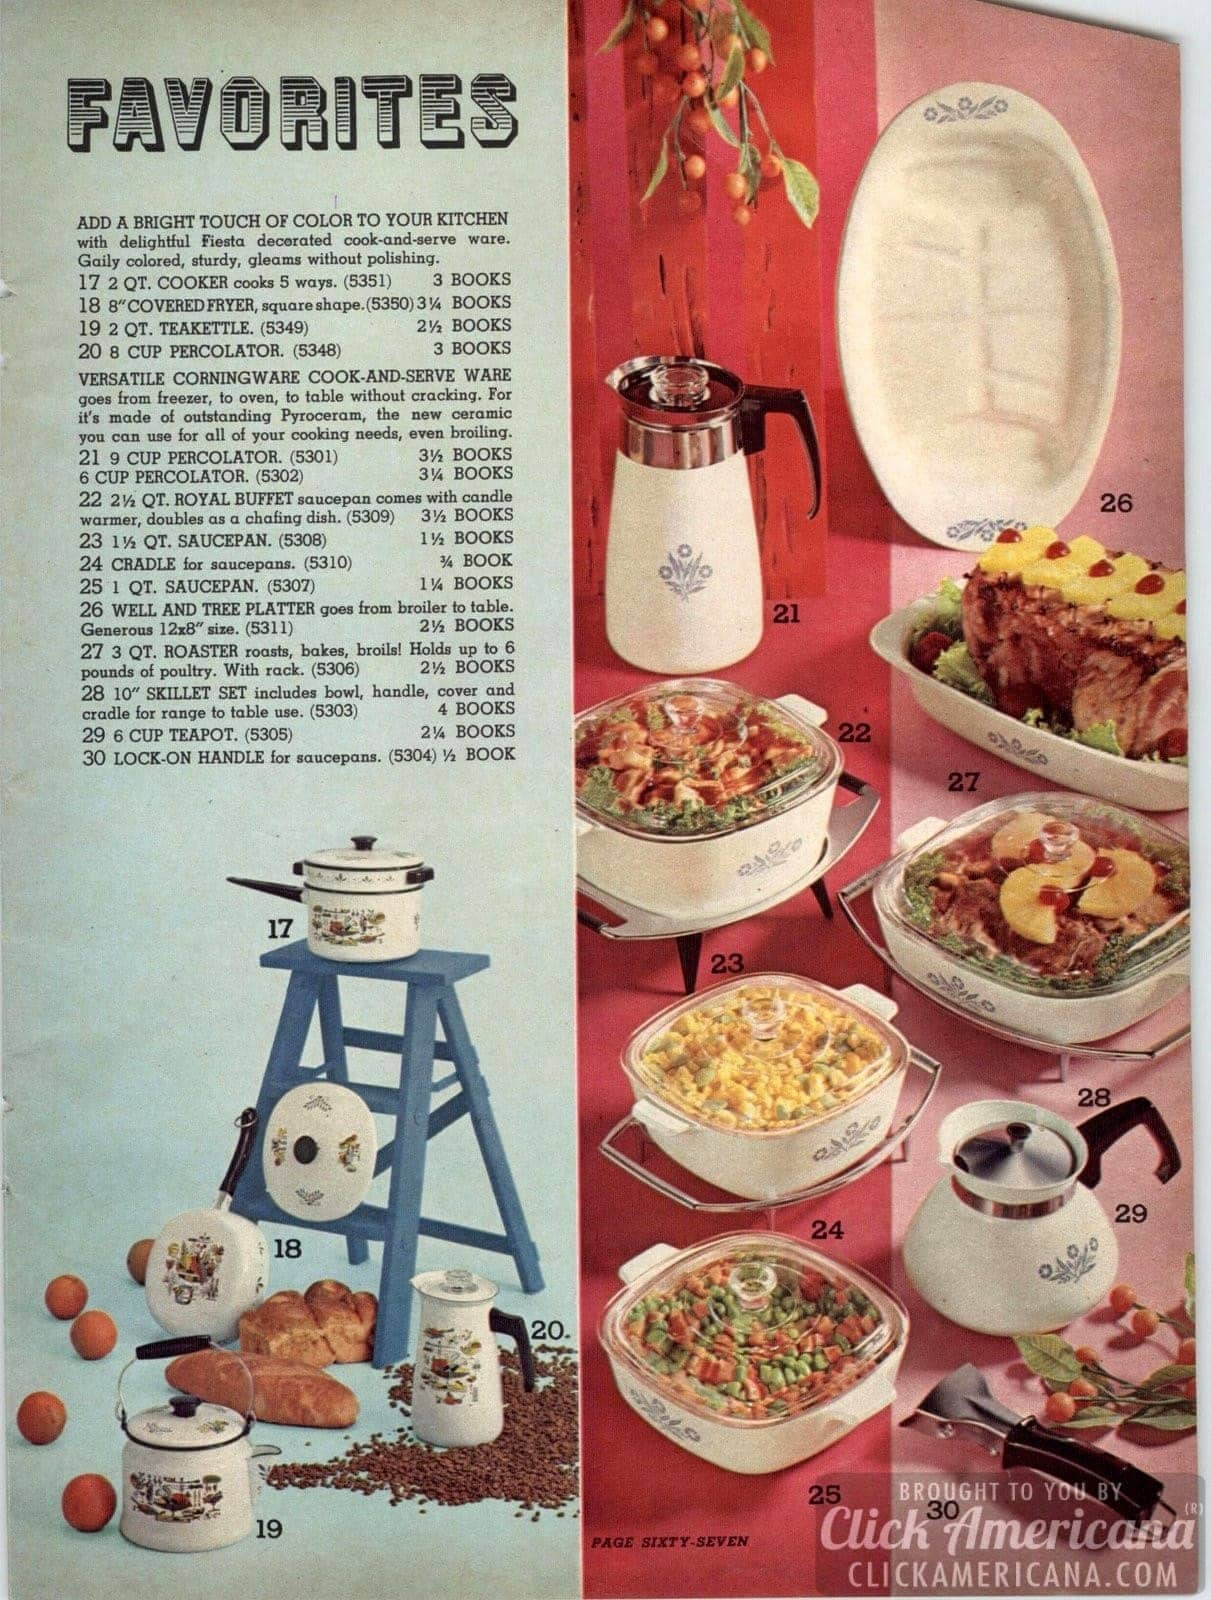 Vintage Pyrex and good old-fashioned Corningware - plus teapots, platters and more